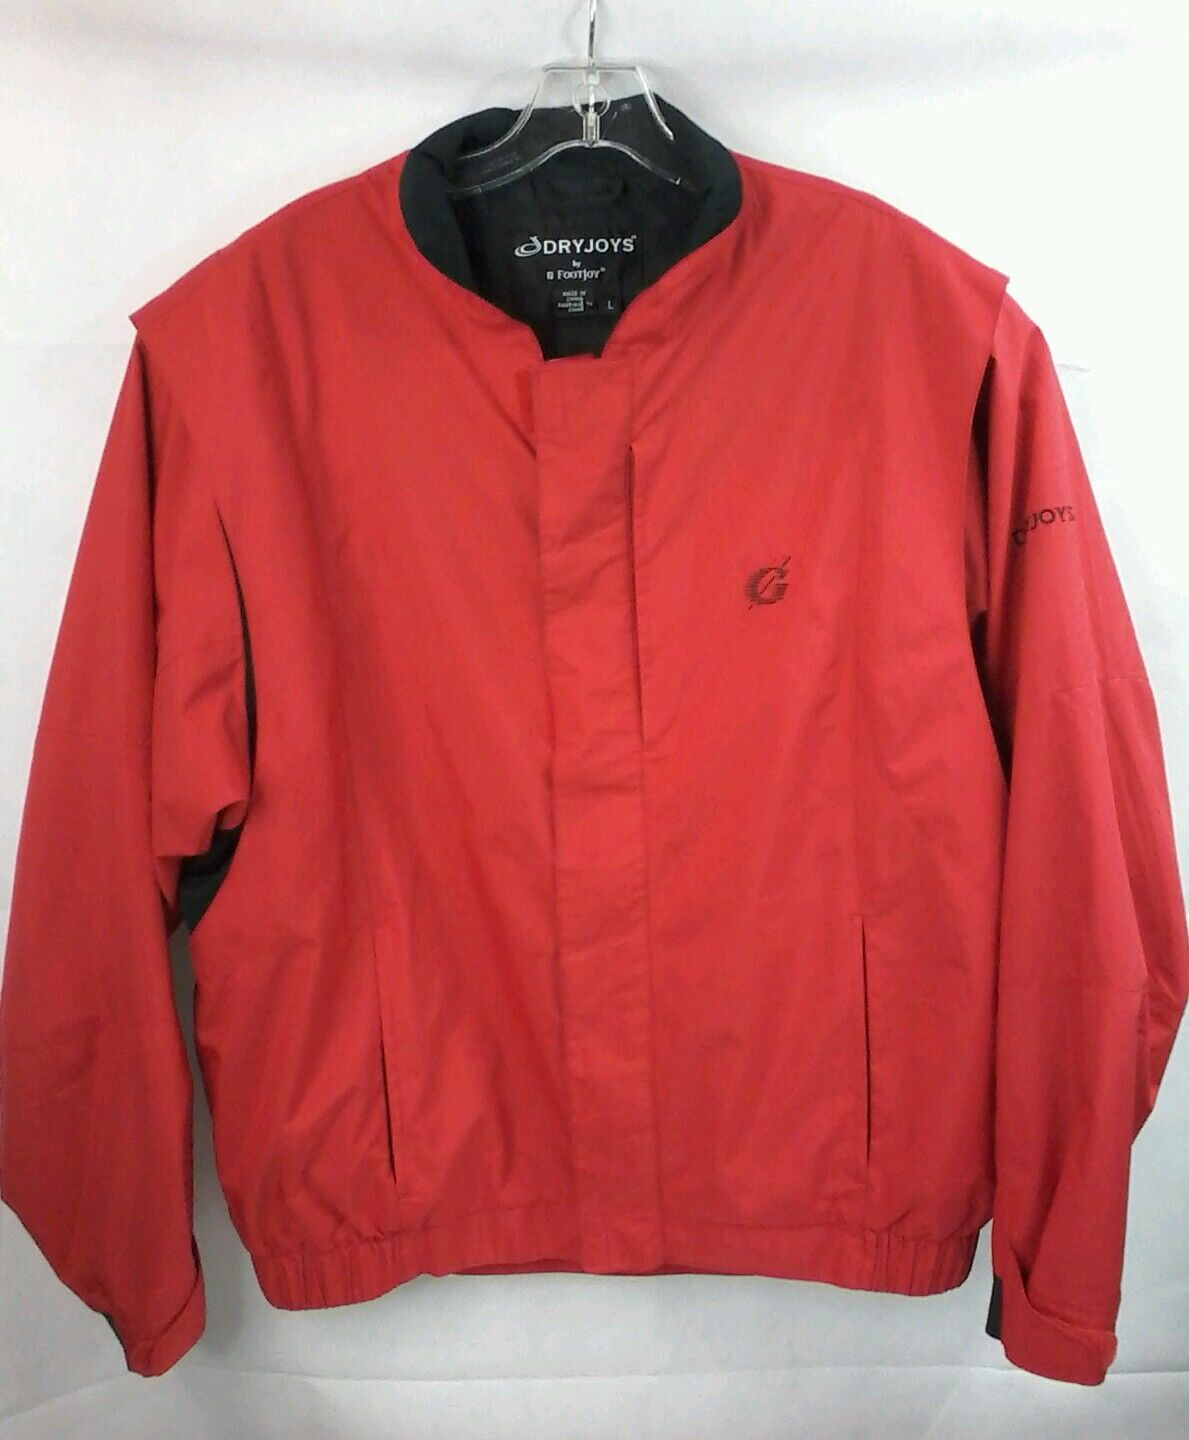 DryJoy by FootJoy Rain Proof Windproof Red Mens Size L zc237